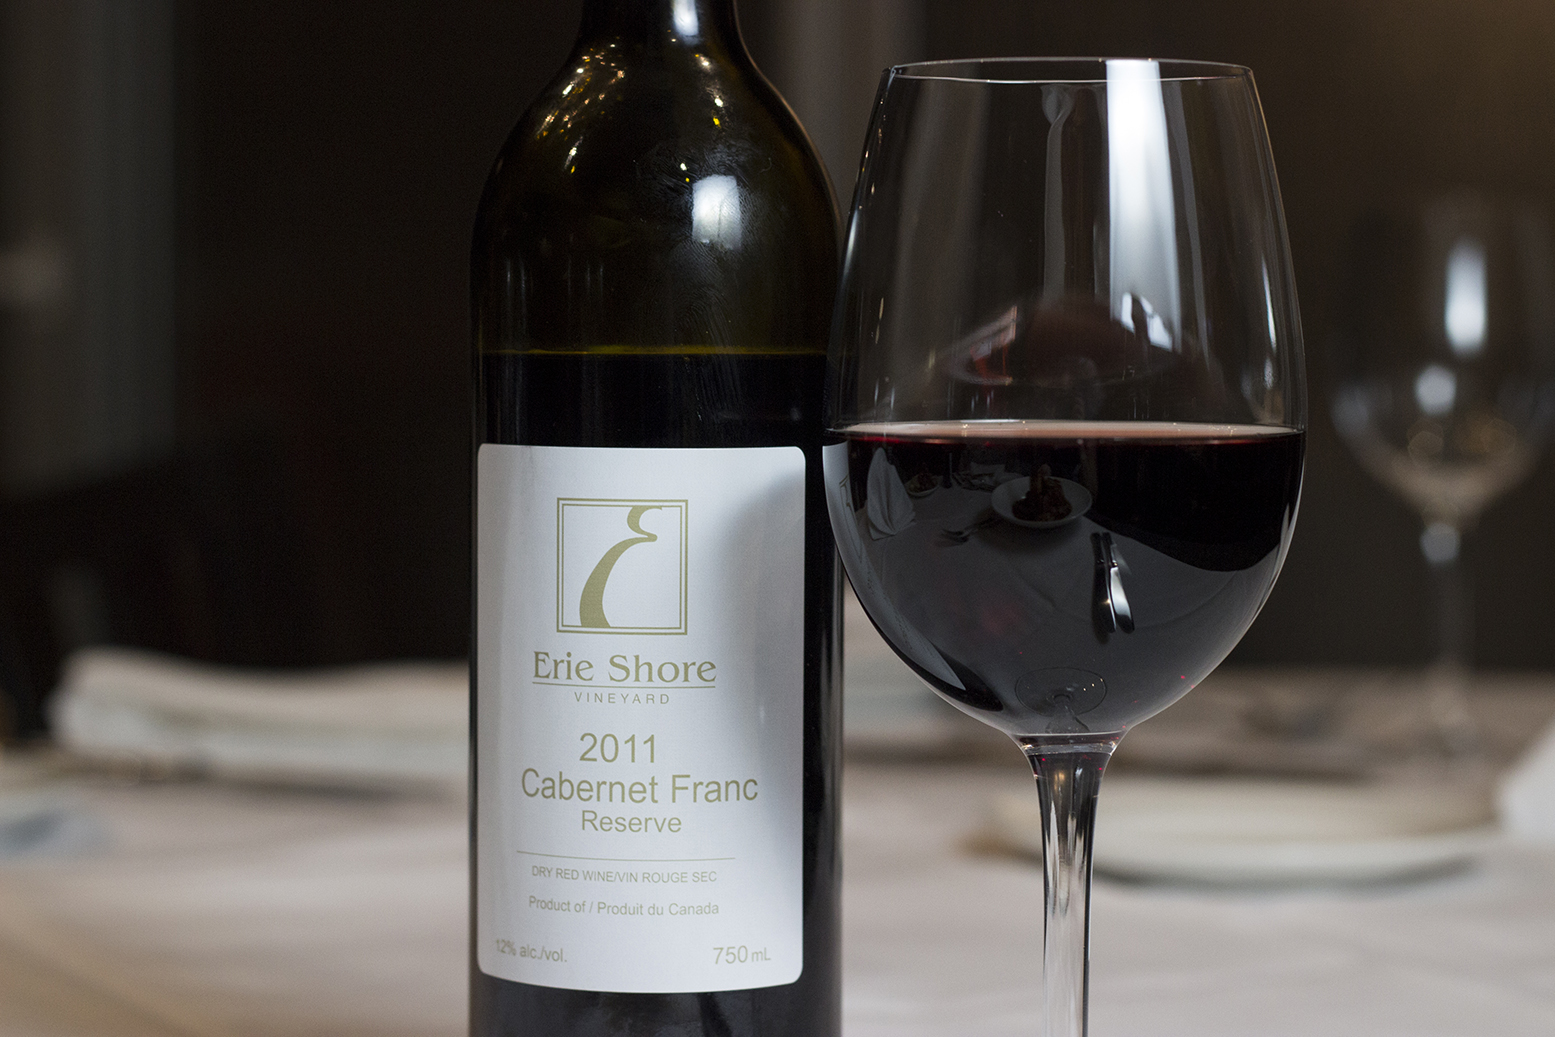 Cabernet Franc Reserve from Erie Shore Vineyard